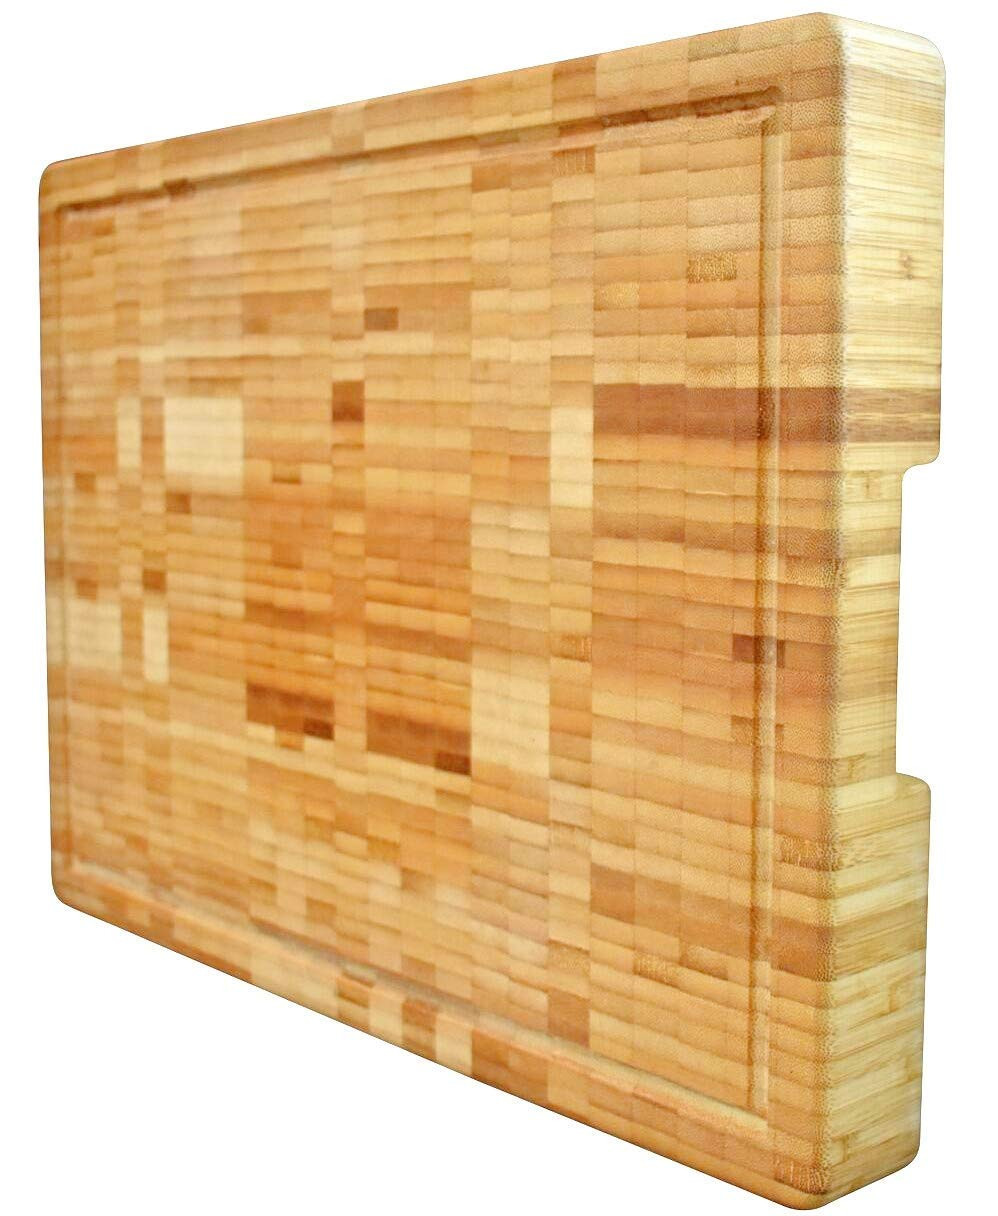 sanding hardwood floors against the grain of amazon com extra large organic bamboo cutting board end grain with regard to amazon com extra large organic bamboo cutting board end grain butcher block thick heavy solid 18x 13 x 2 inch anti bacterial wood great for wooden